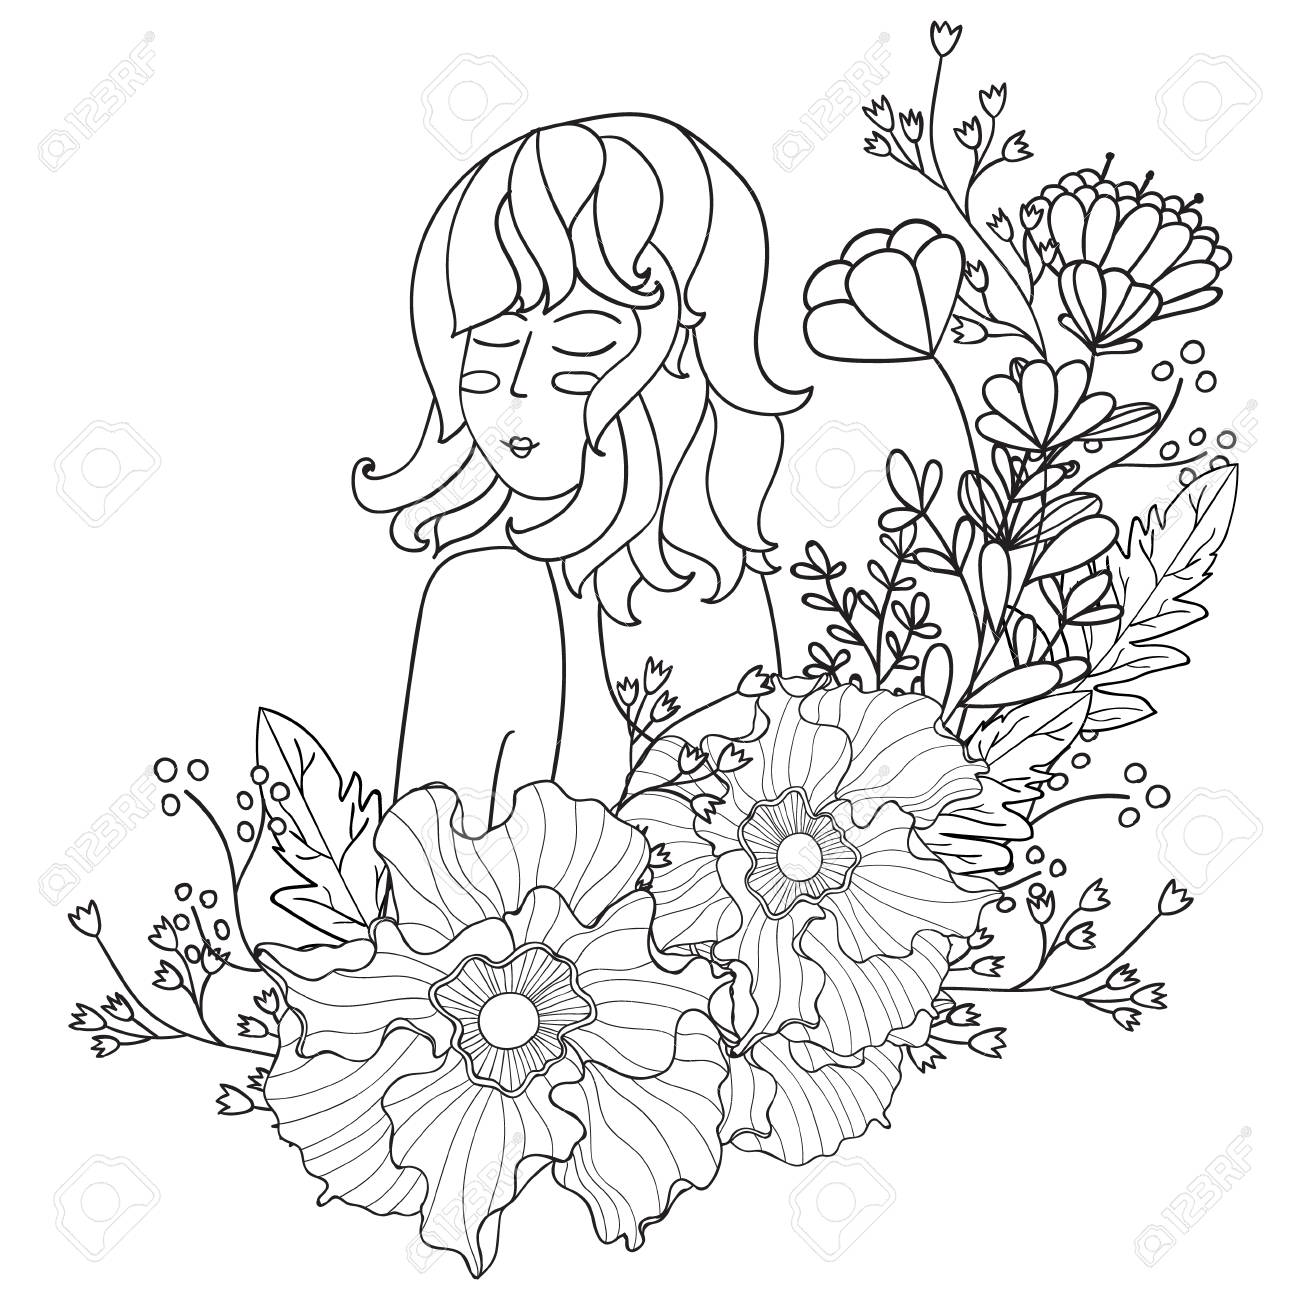 Vector Illustration Black And White Woman With Flowers Coloring